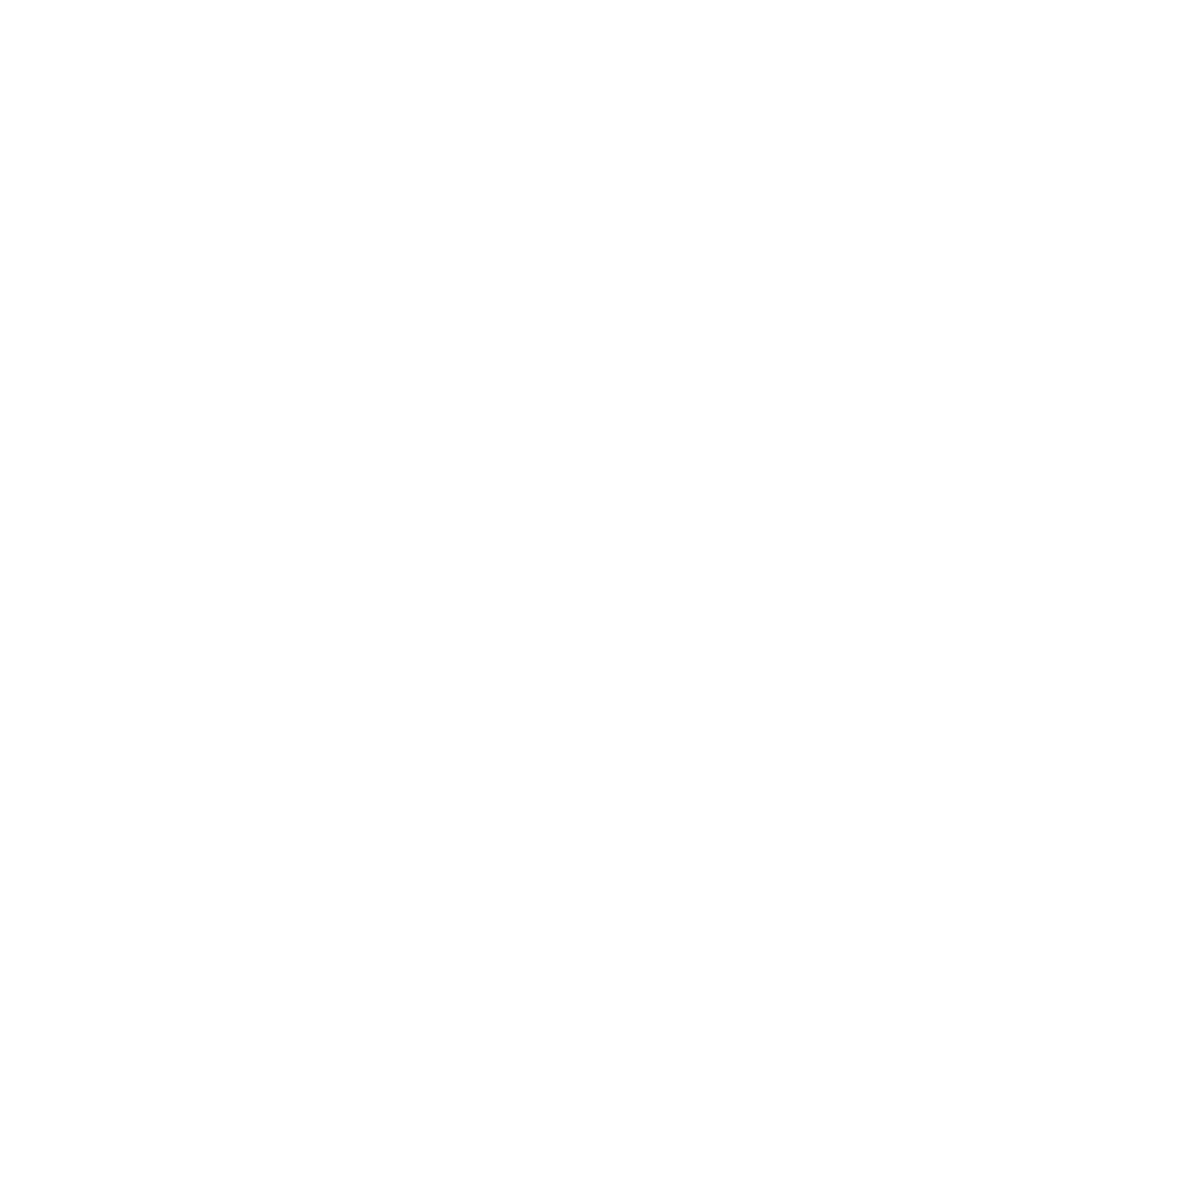 salvation army shield png logo #5163